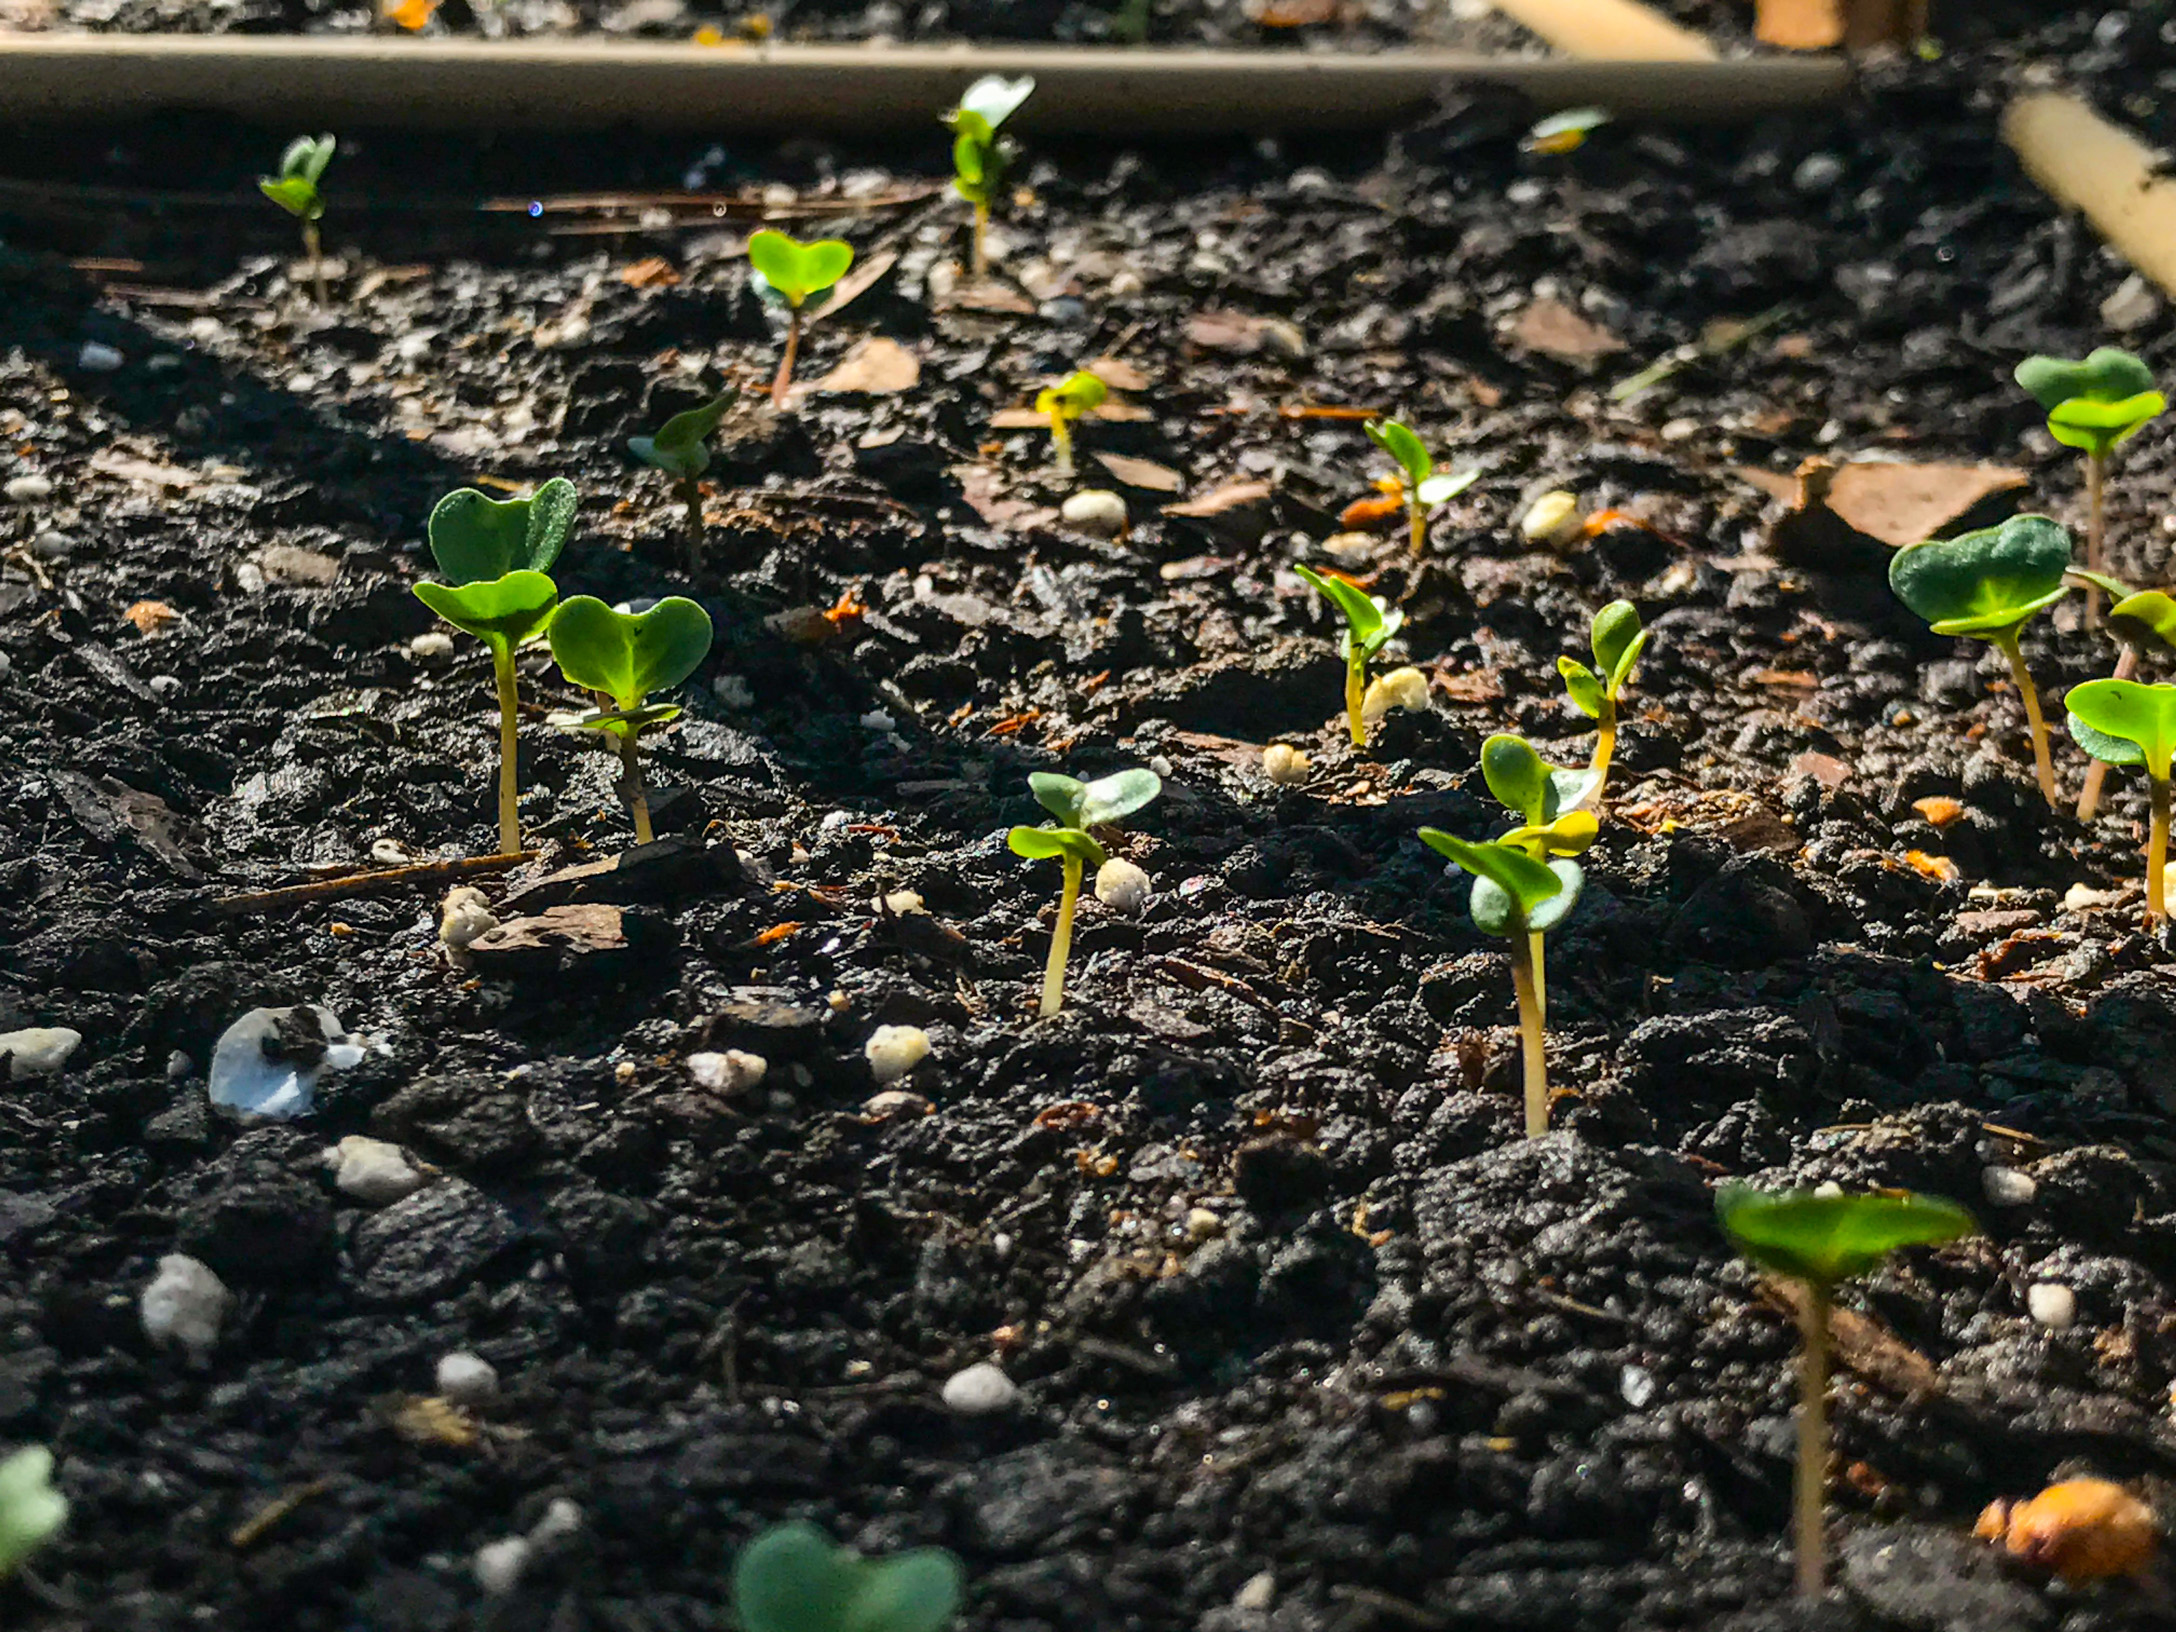 Romanesco Italia Broccoli.  I was very surprised this starting sprouting as soon as it did, a good week after sowing.